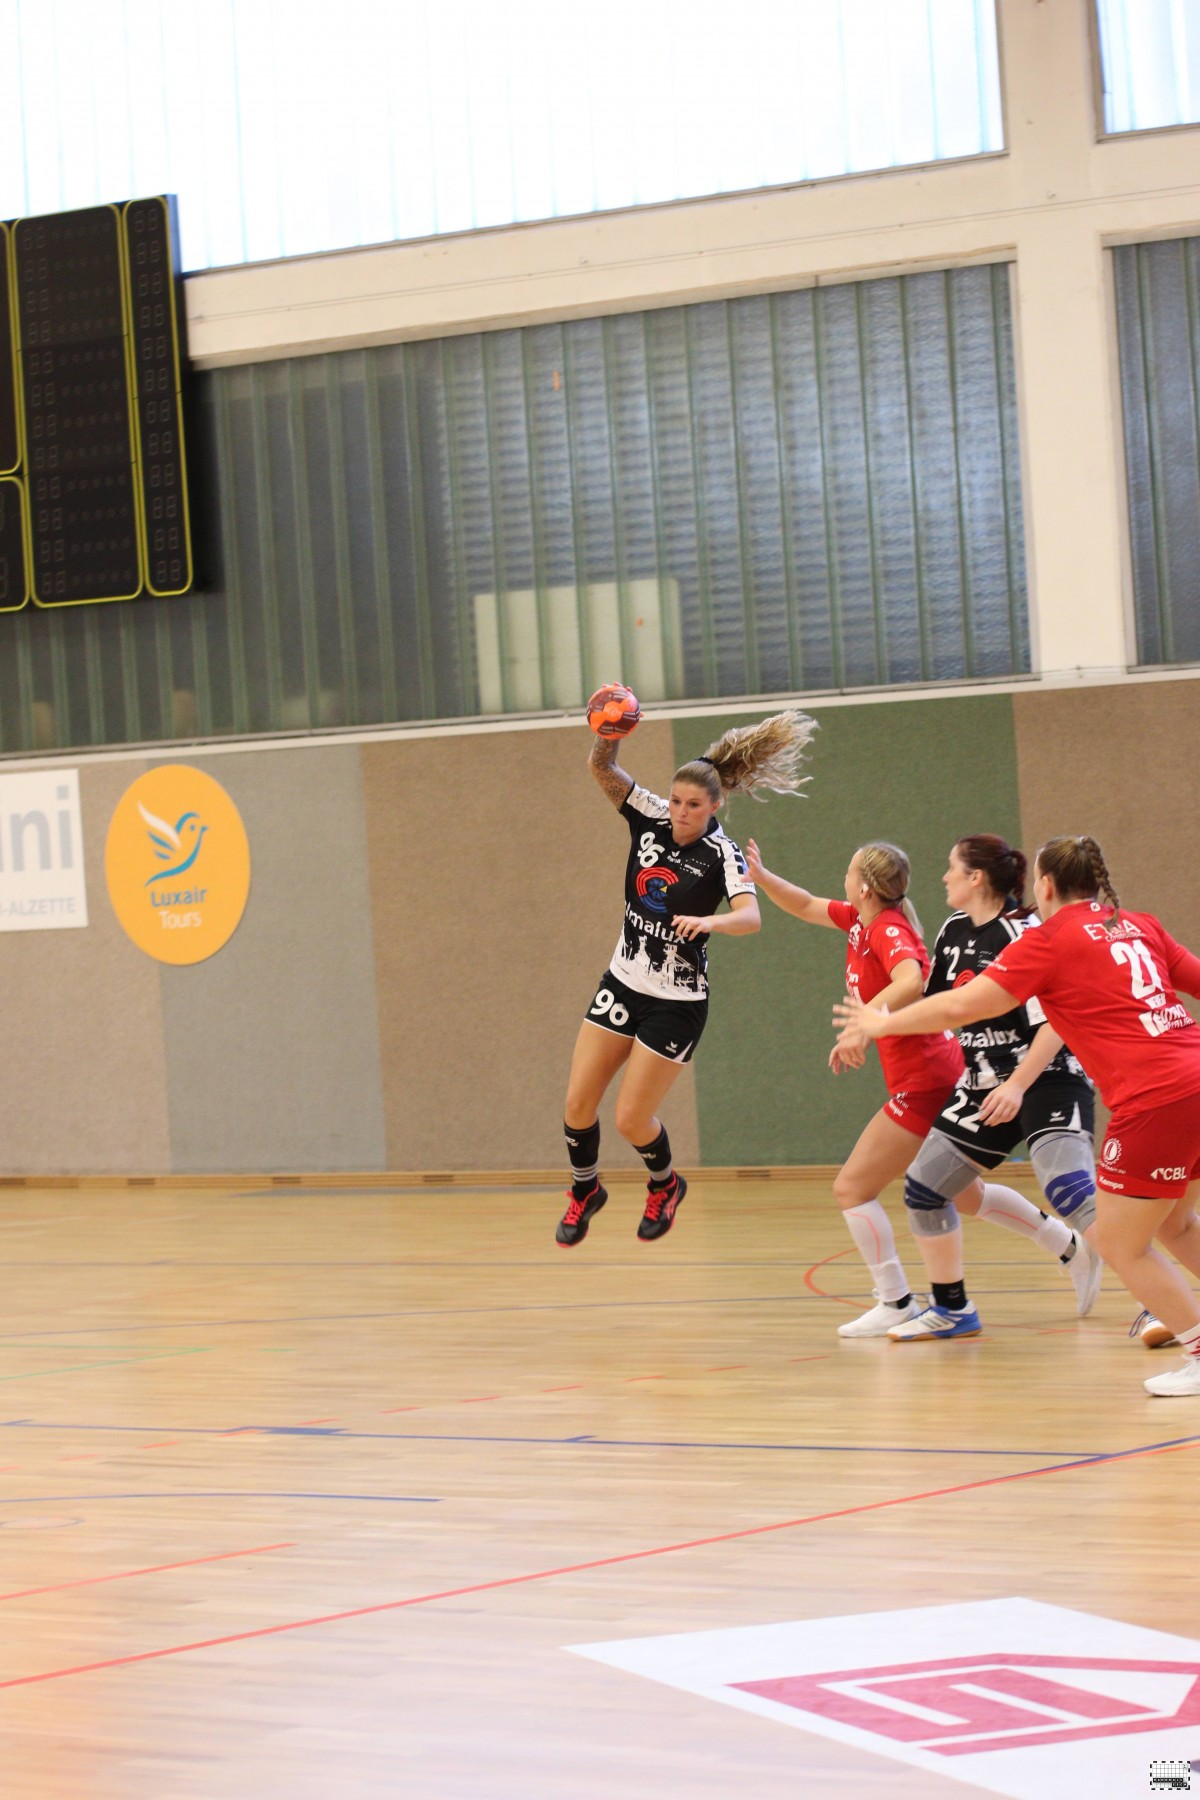 10.10.2020 D1: Handball Esch 19 - 29 Red Boys Déifferdeng